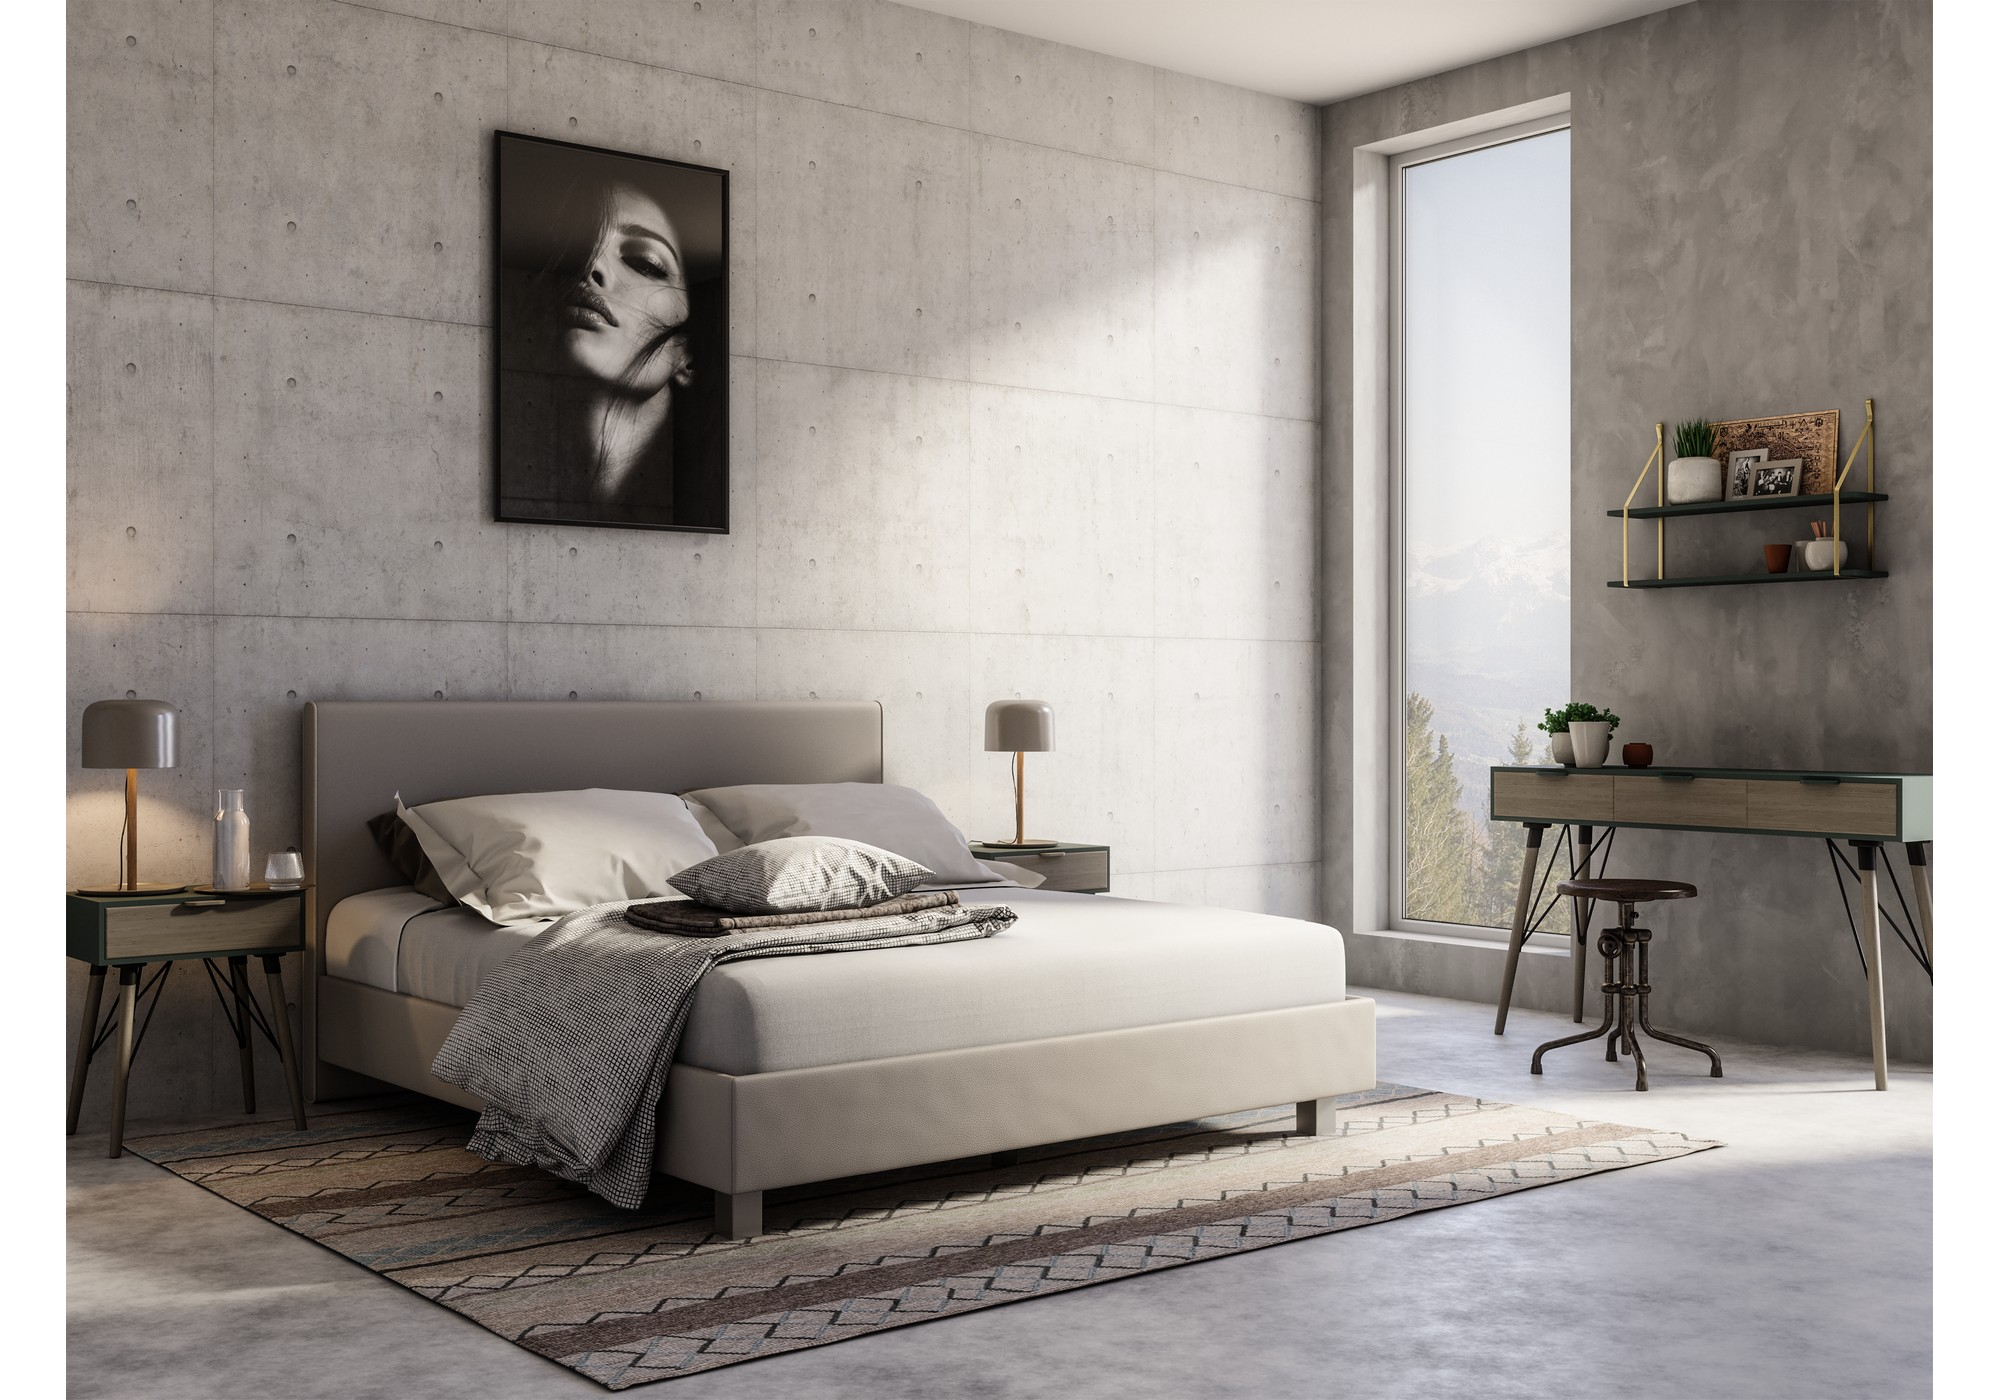 Swissbed silhouette bündig_Leatherlook_Ivory